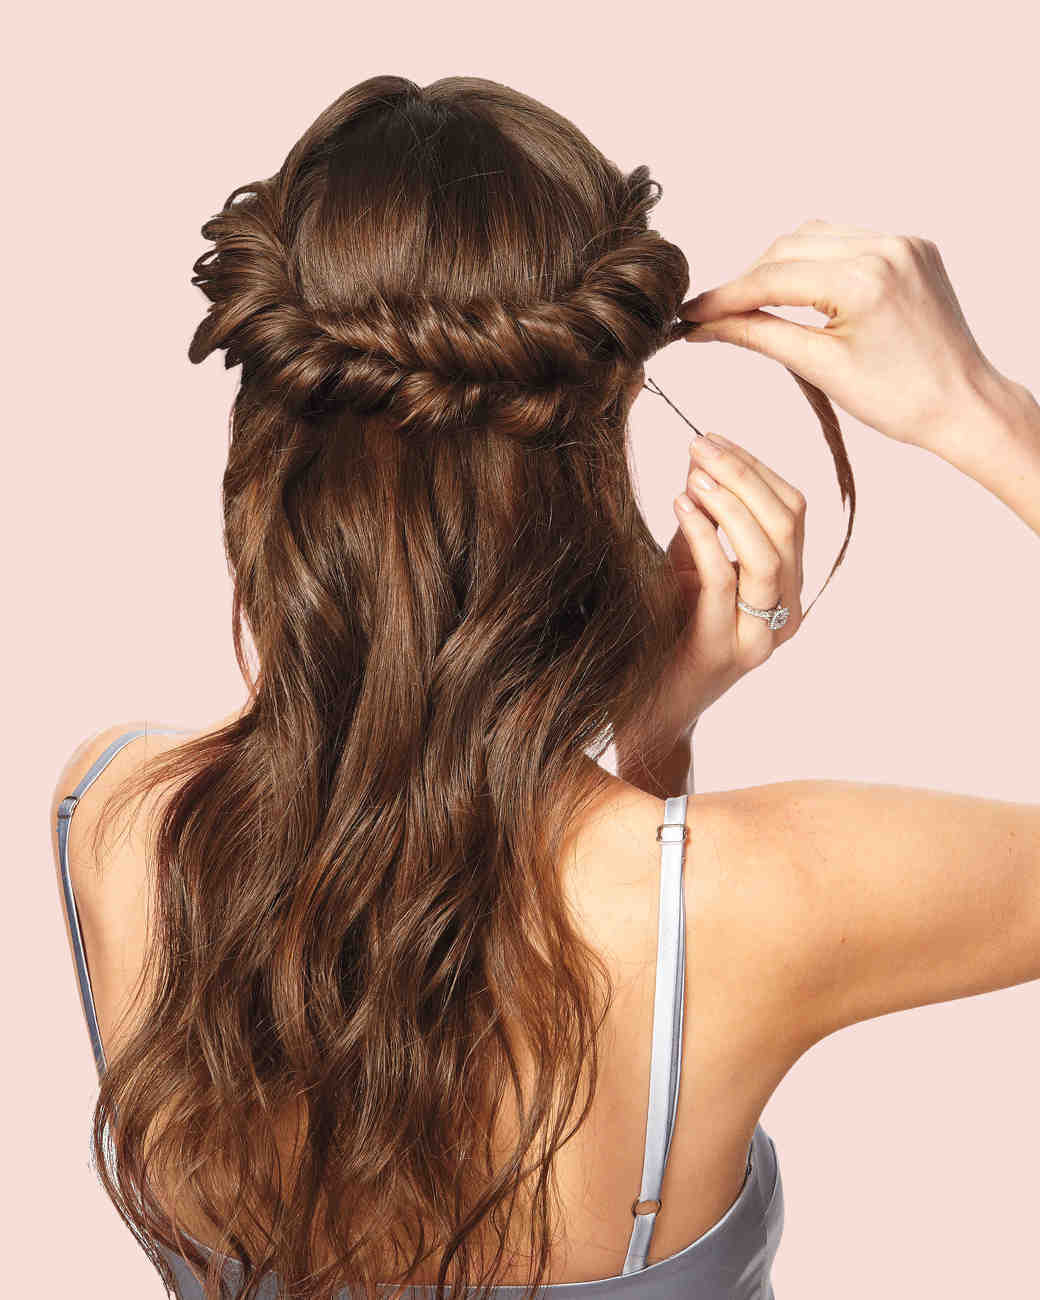 Best ideas about DIY Wedding Updos . Save or Pin DIY Wedding Updos Now.